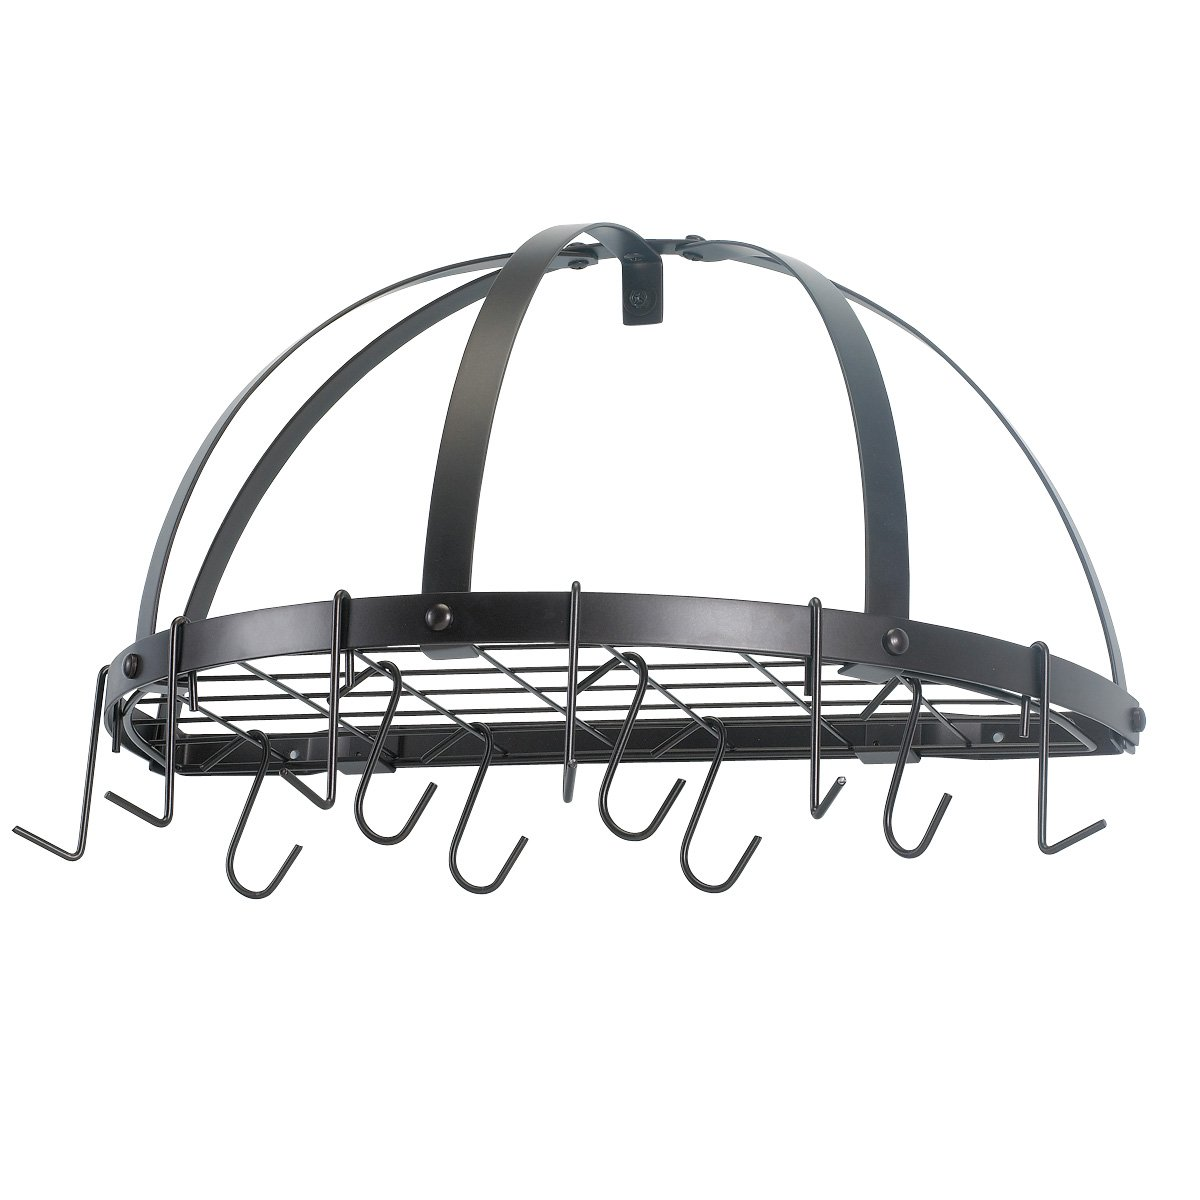 Old Dutch Half-Round Pot Rack with Grid & 12 Hooks, Oiled Bronze, 22'' x 11'' x 12''